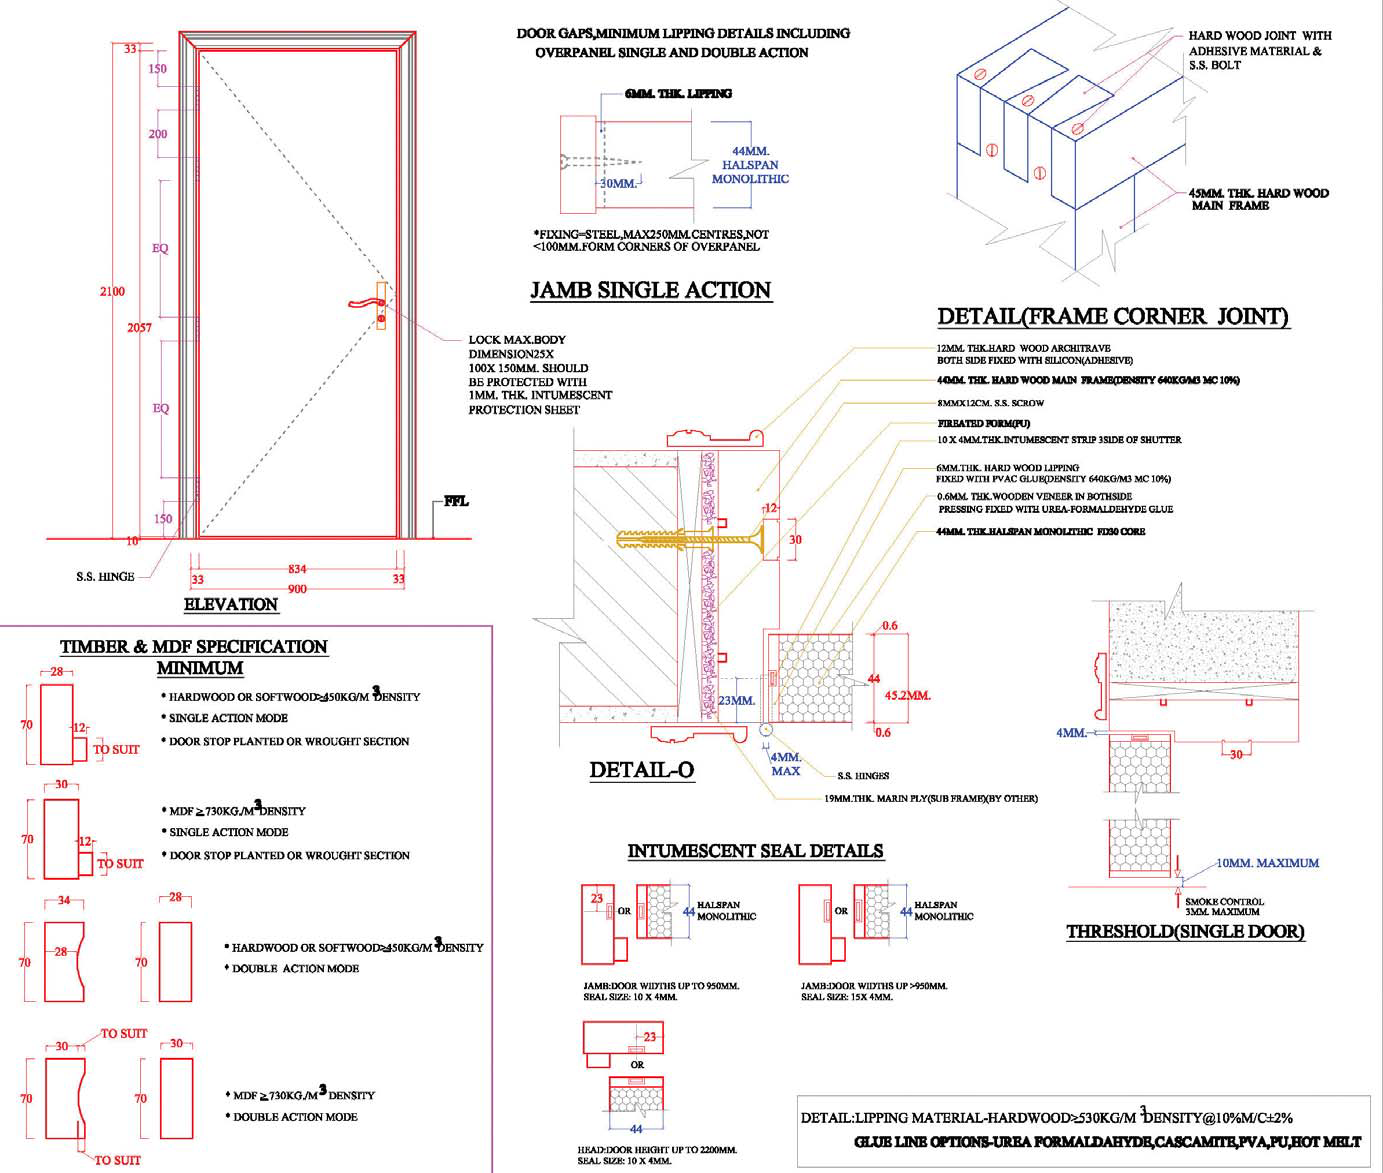 FD specification